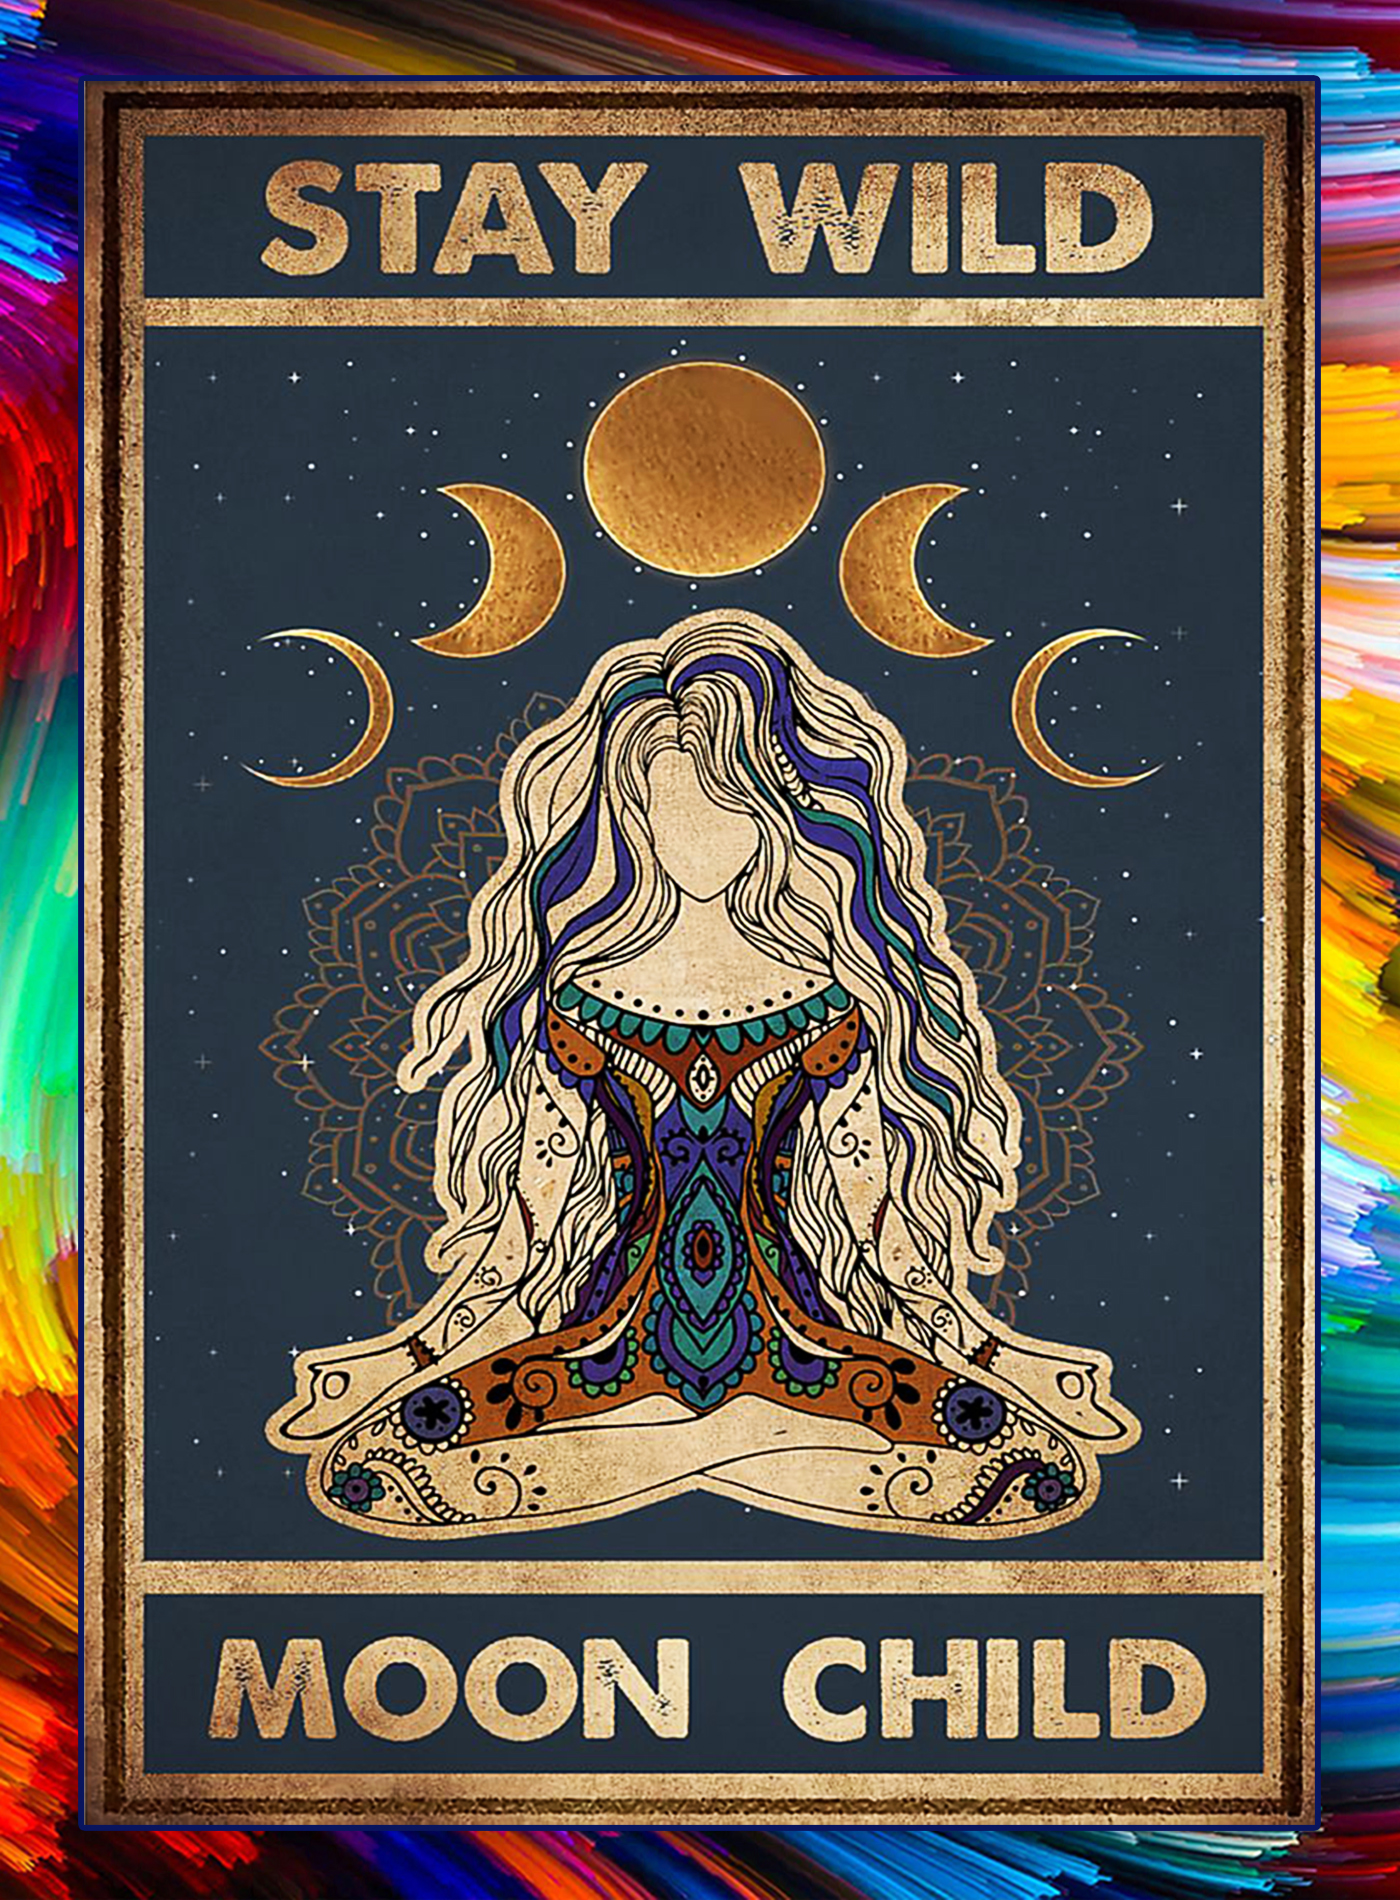 Stay wild moon child yoga girl poster - A1